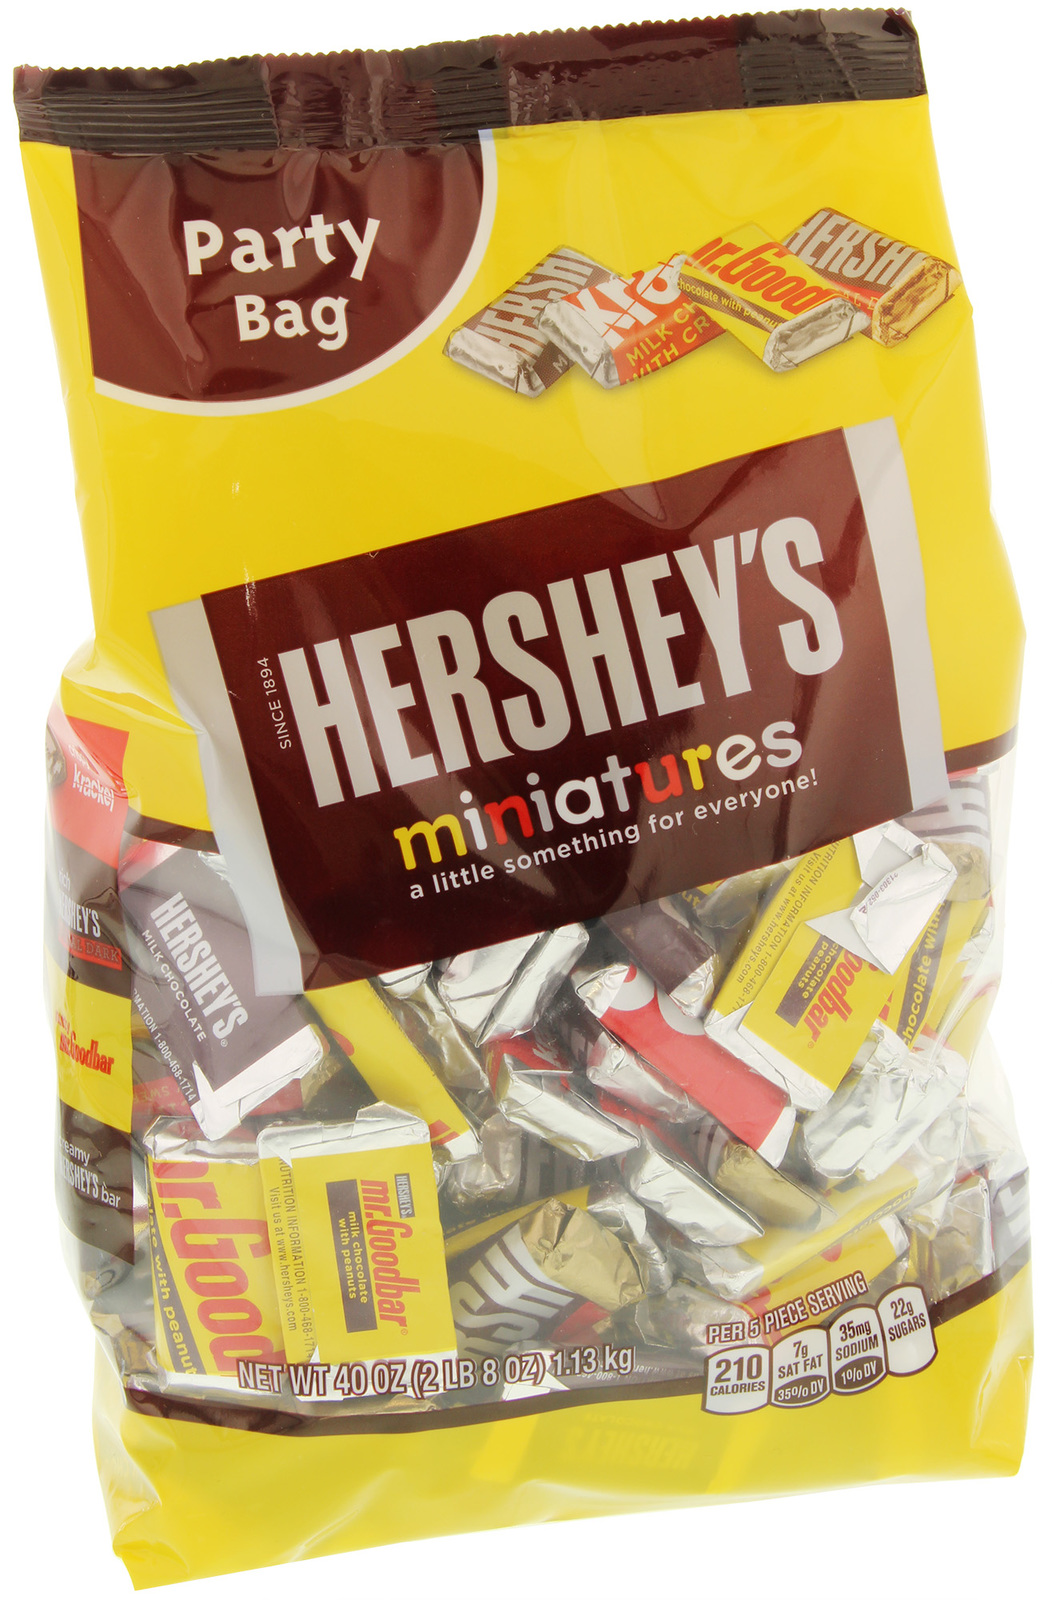 Hershey's Party Bag Assorted Miniatures (1.13kg) image